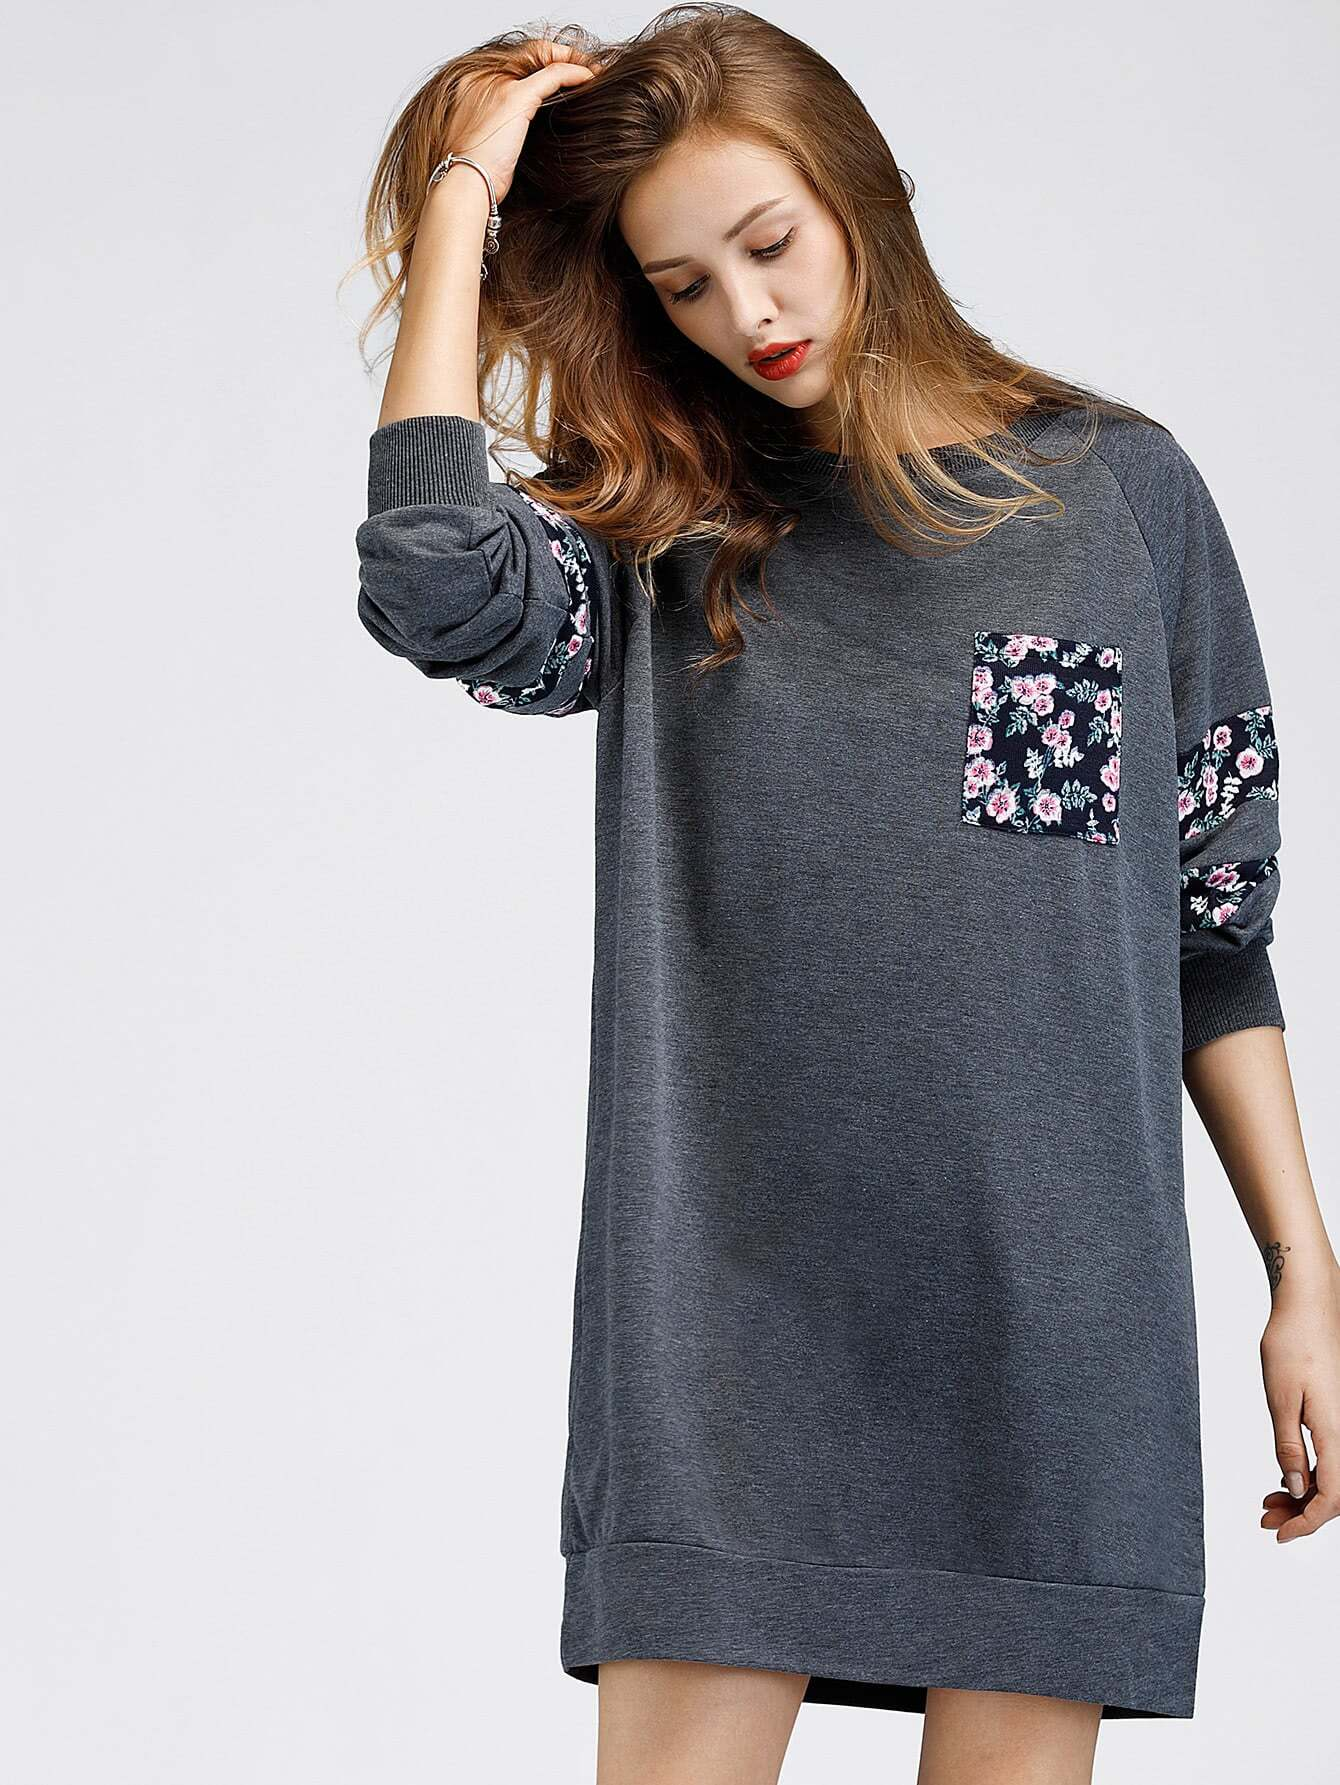 Contrast Panel Raglan Sleeve Marled Sweatshirt Dress raglan sleeve binding marled crop top